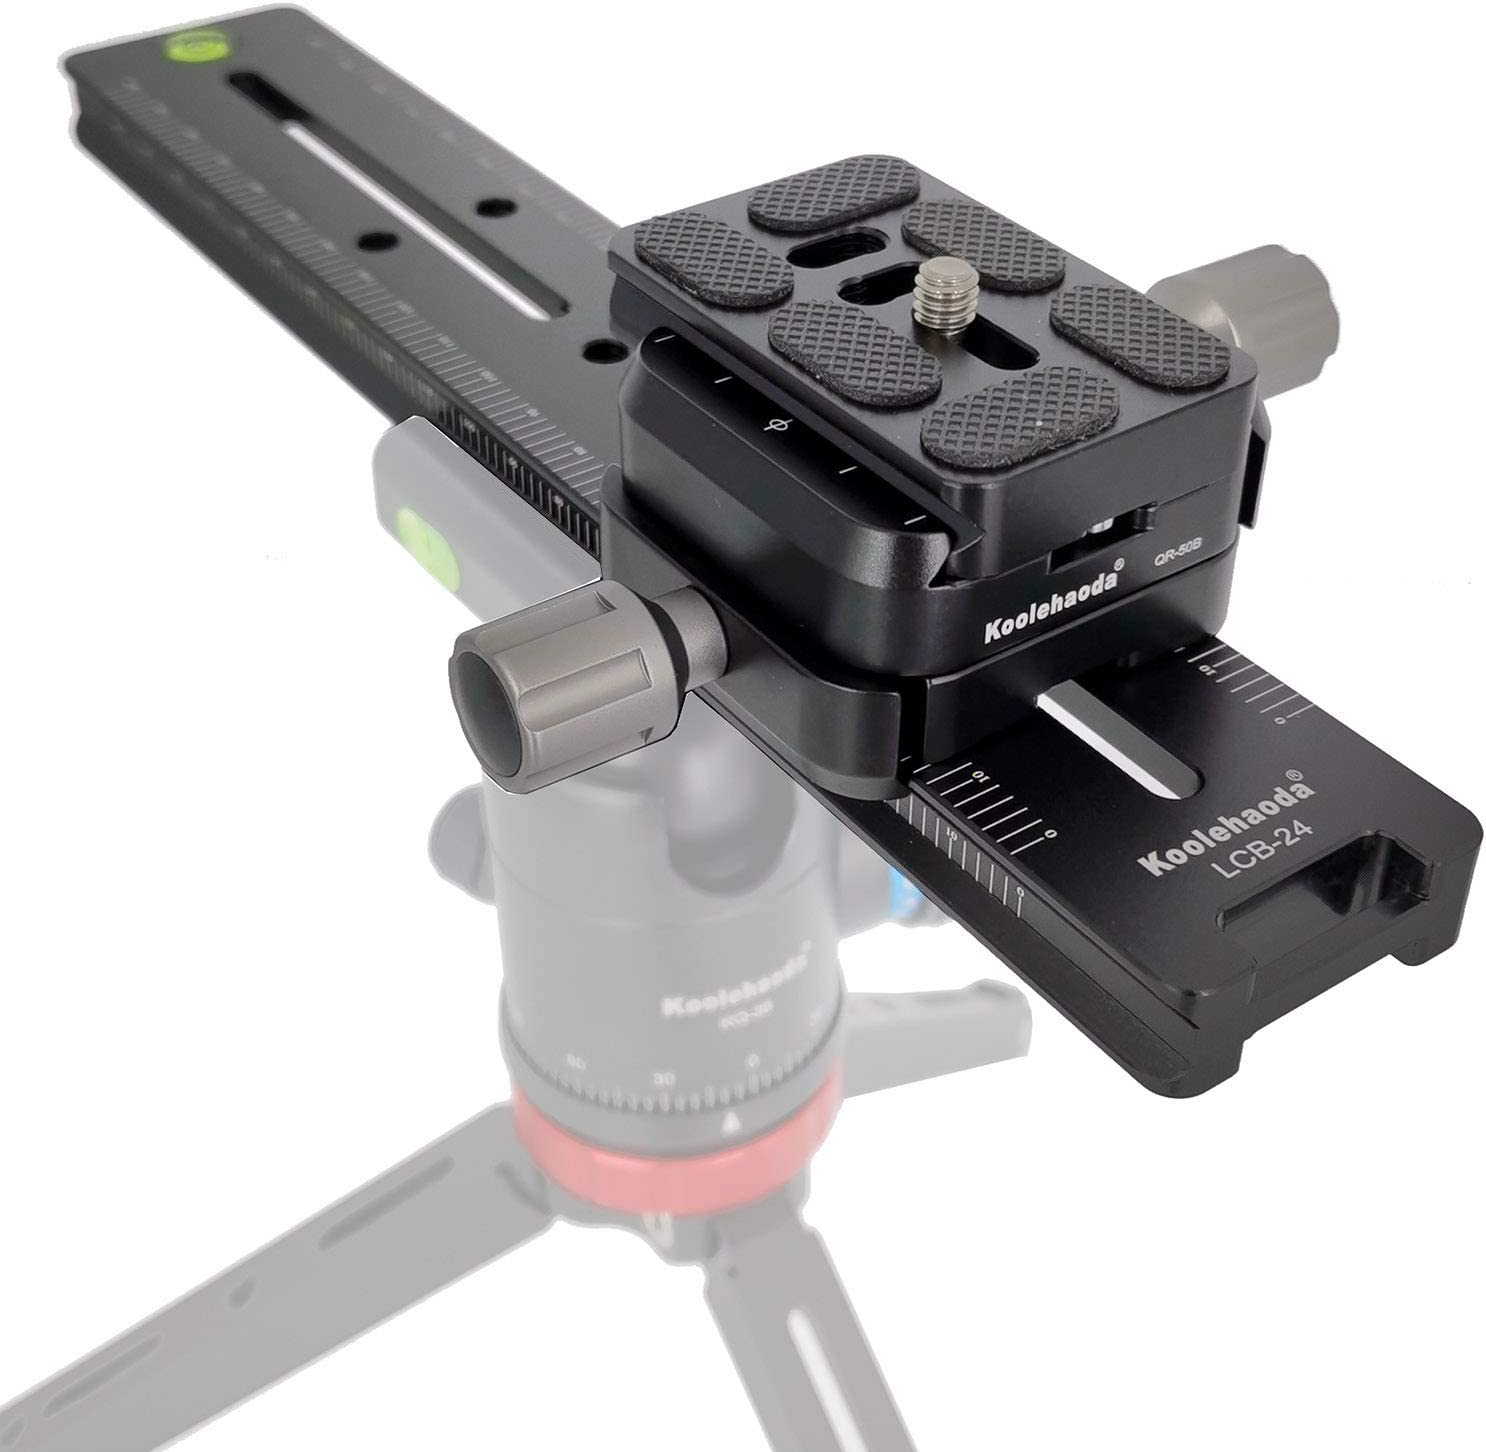 koolehaoda 240mm Professional Rail Nodal Slide Metal Quick Release Clamp,Dual Dovetail Camera Bracket Mount with Double-Sided Clamp can be Rotated 90/° for Camera with Arca Swiss Compatible. LCB-24R